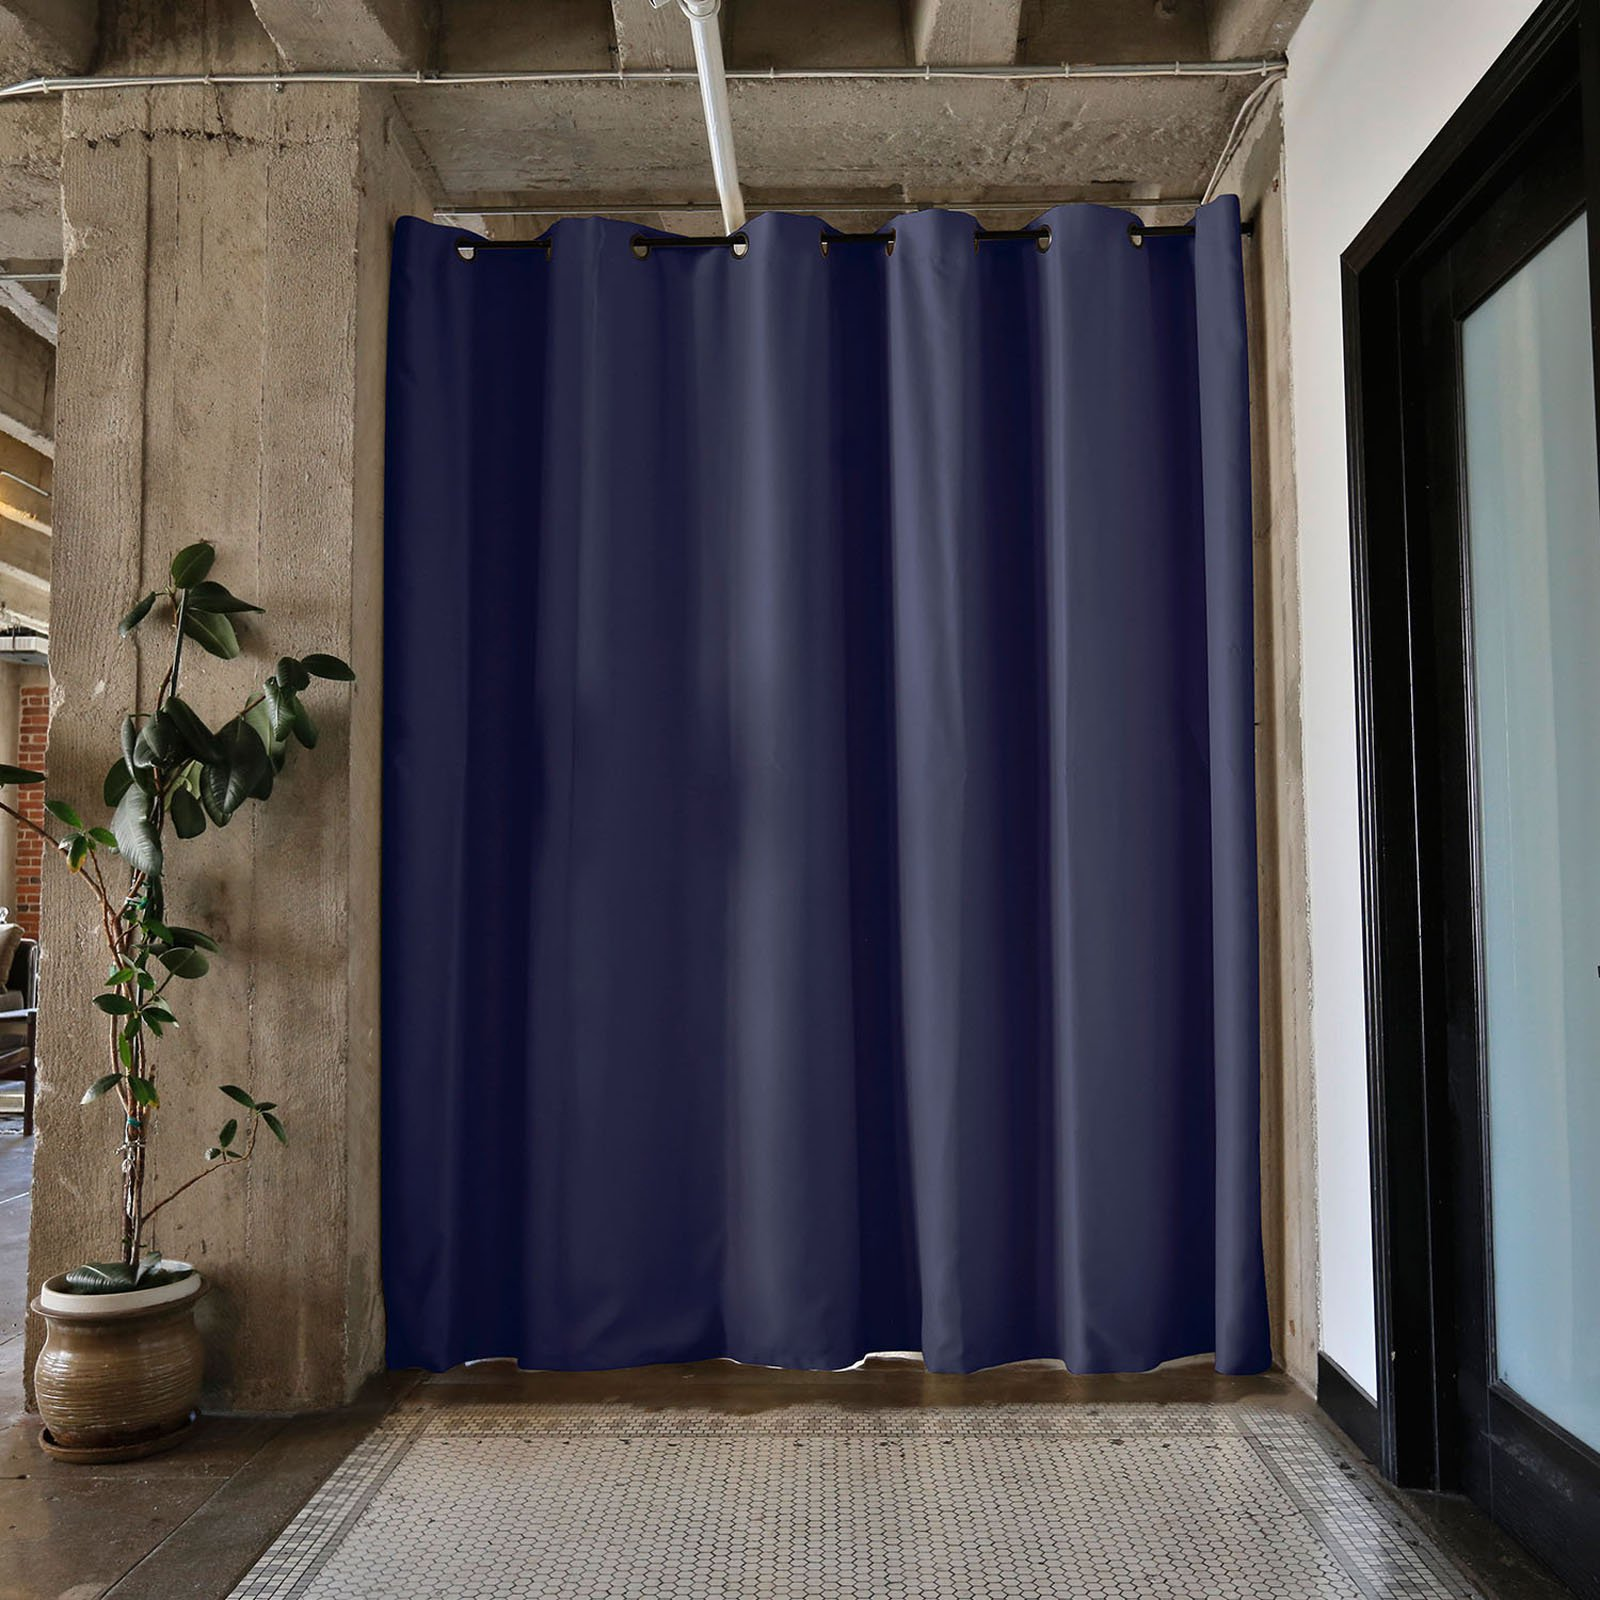 room divider of fabric curtains curtain to photo floor ideas ceiling